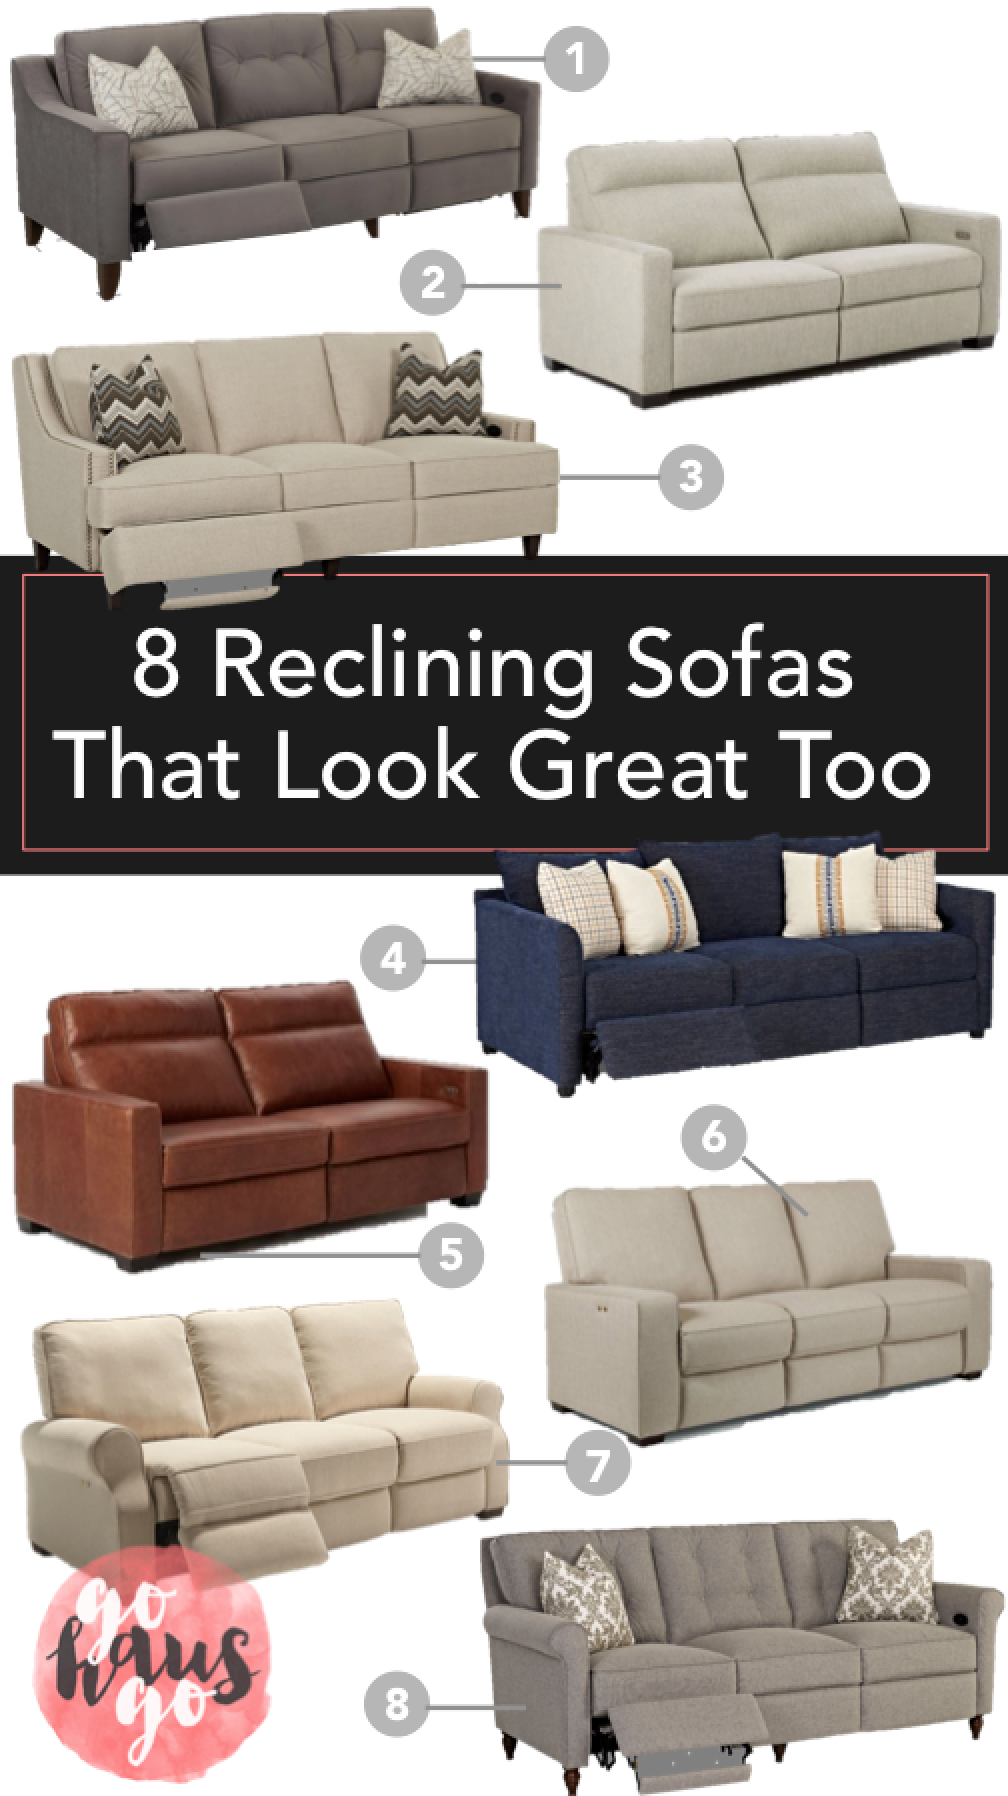 8 Reclining Sofas That Look Great Too U2013 Go Haus Go U2013 A DIY And Design Blog  By Emily May